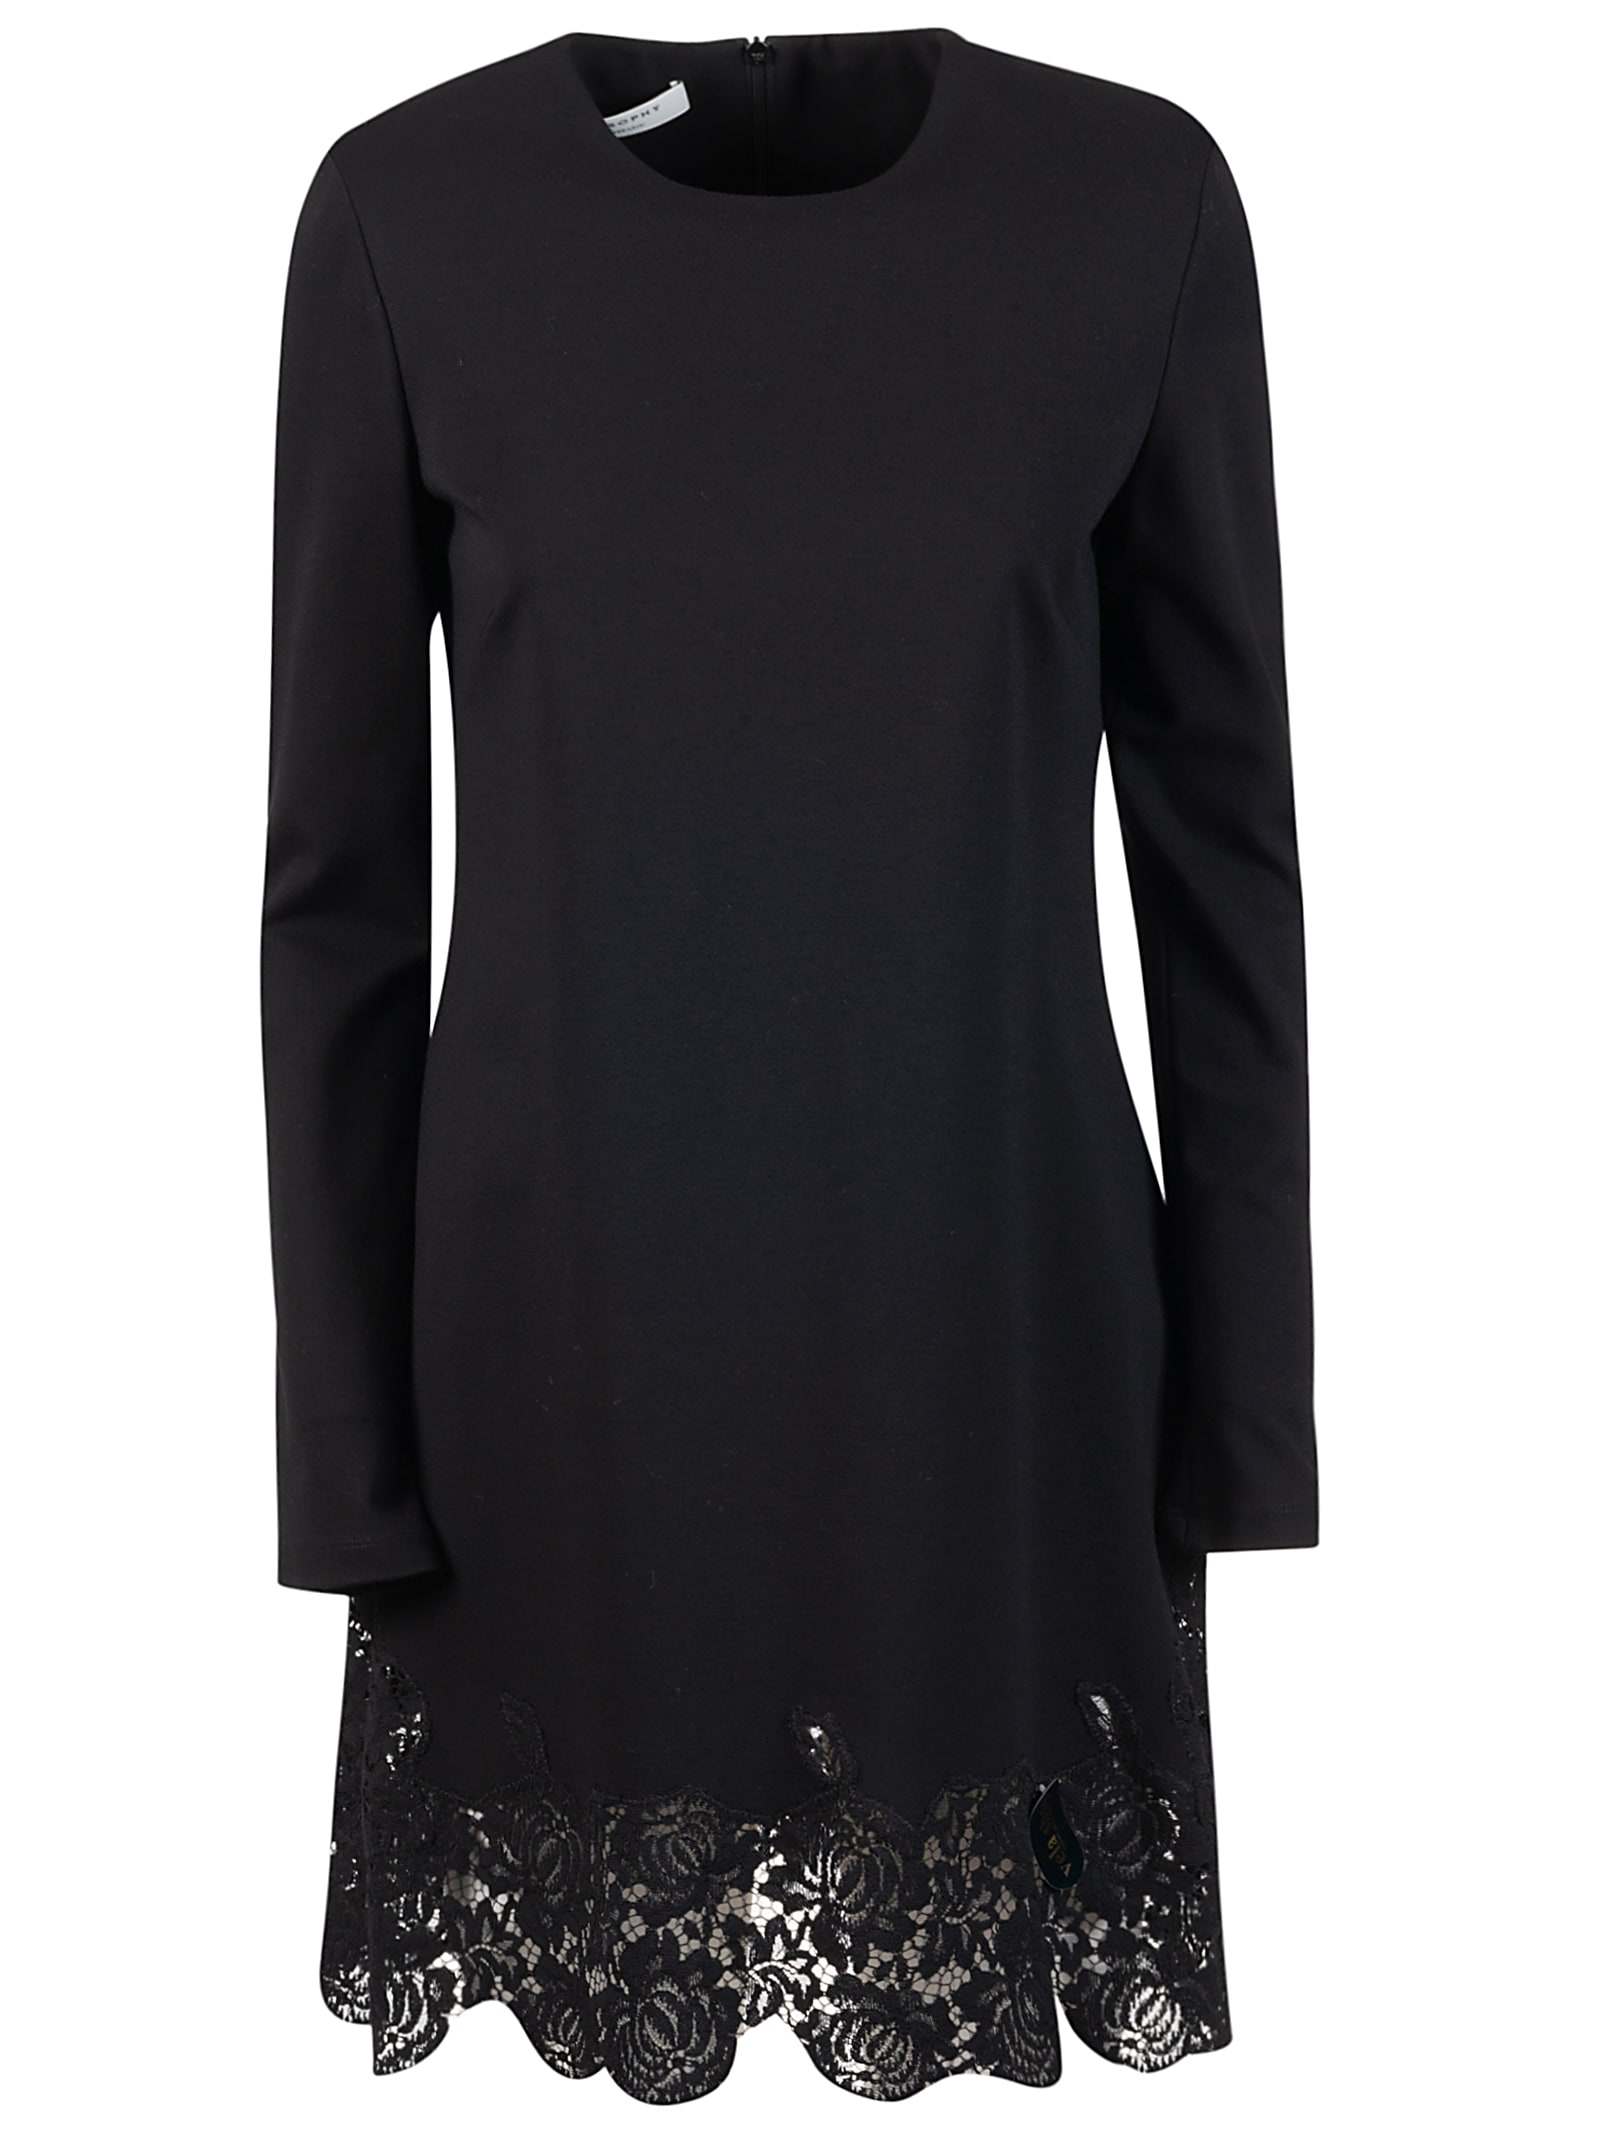 Philosophy di Lorenzo Serafini Floral Lace Detail Dress